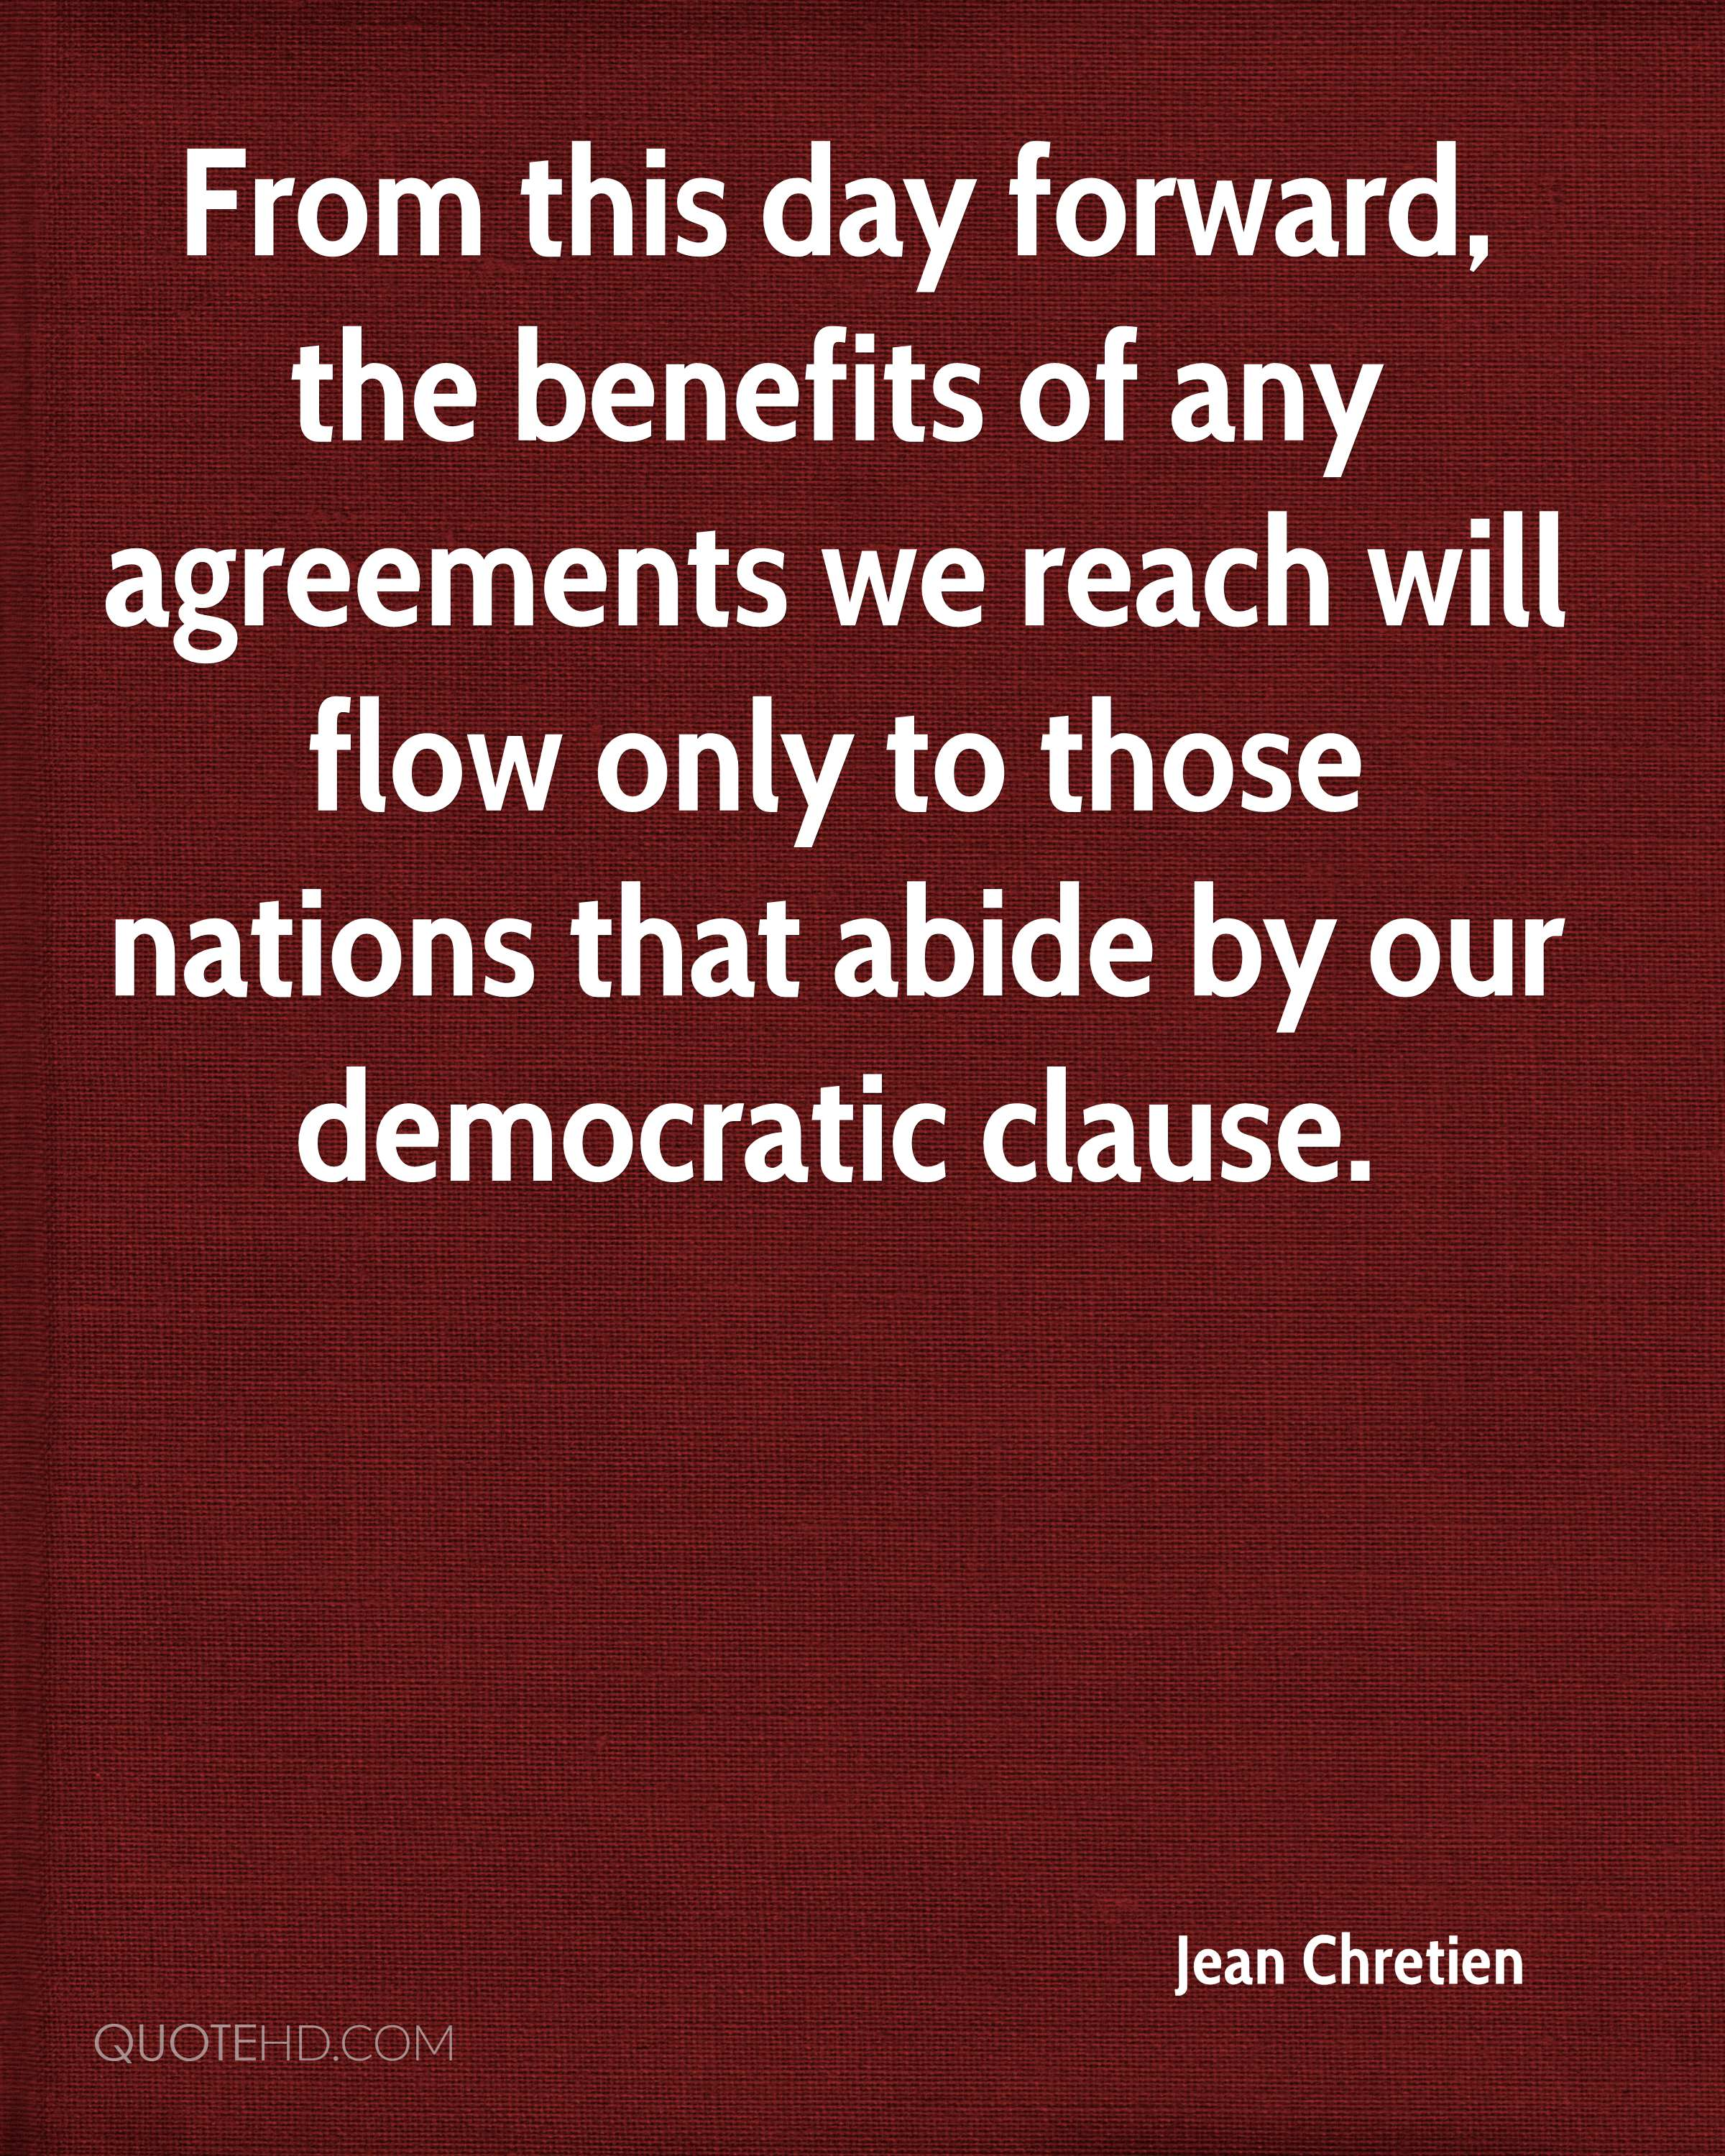 From this day forward, the benefits of any agreements we reach will flow only to those nations that abide by our democratic clause.